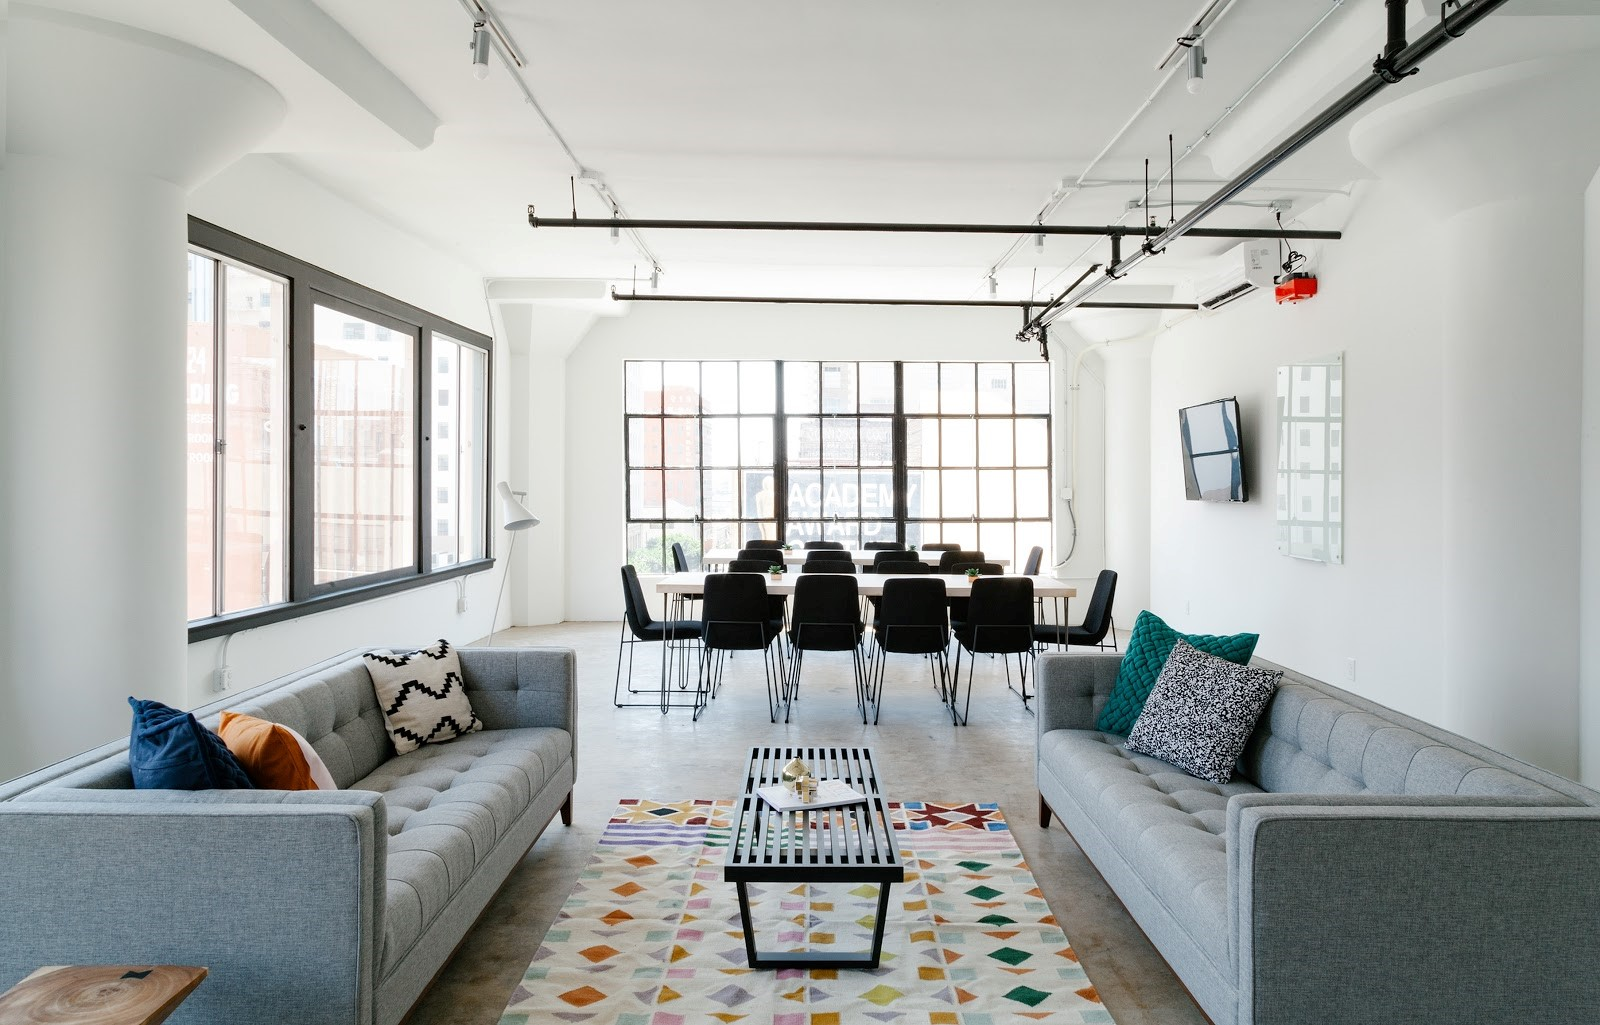 Offices & Workspaces Archives - Kirei USA